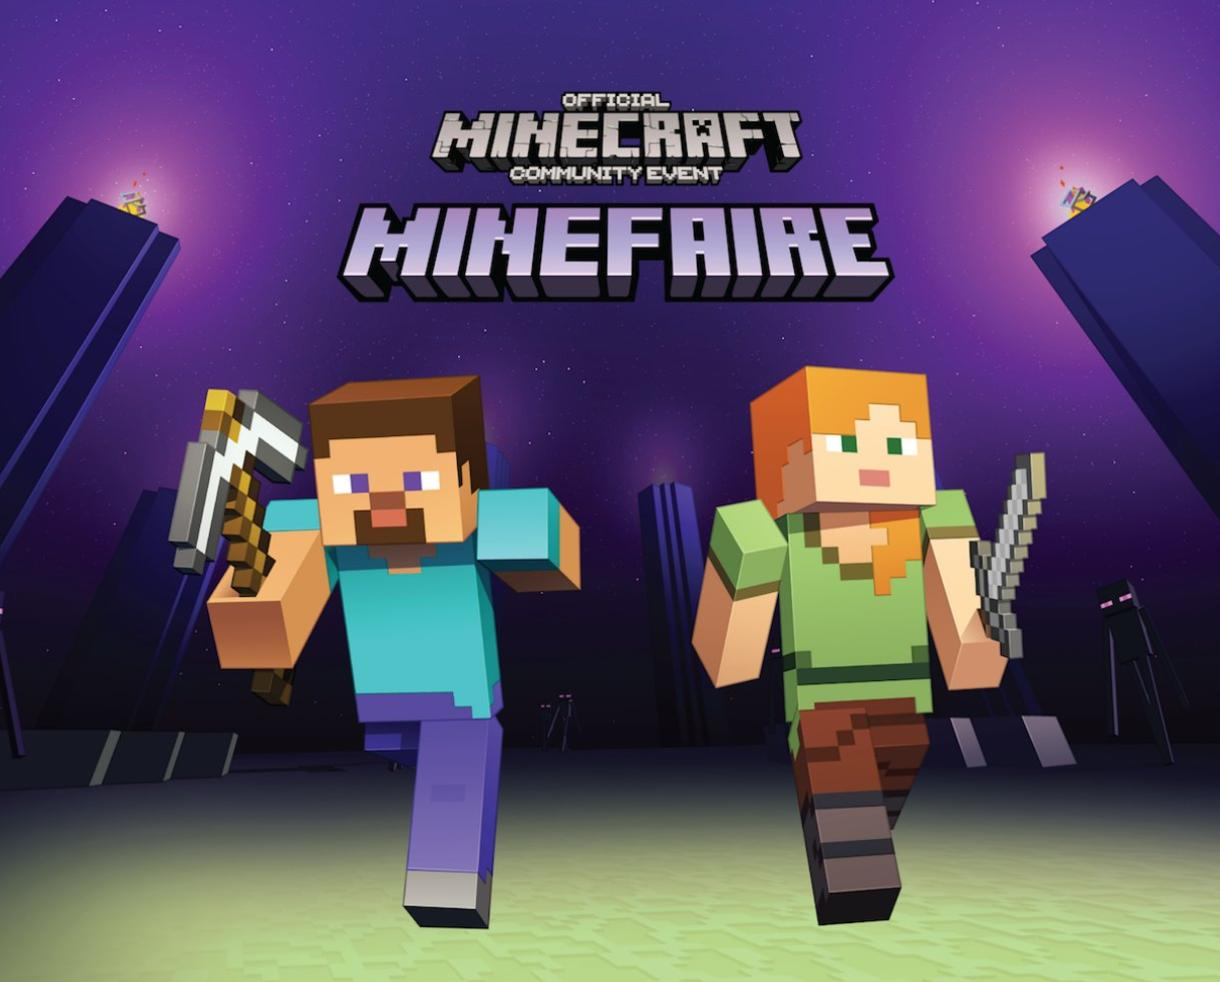 $29.50 for Minefaire, a MINECRAFT® Fan Experience General Admission Ticket OR $44.50 for VIP Ticket - Feb 10-11 at San Mateo County Event Center (Up to 40% Off)